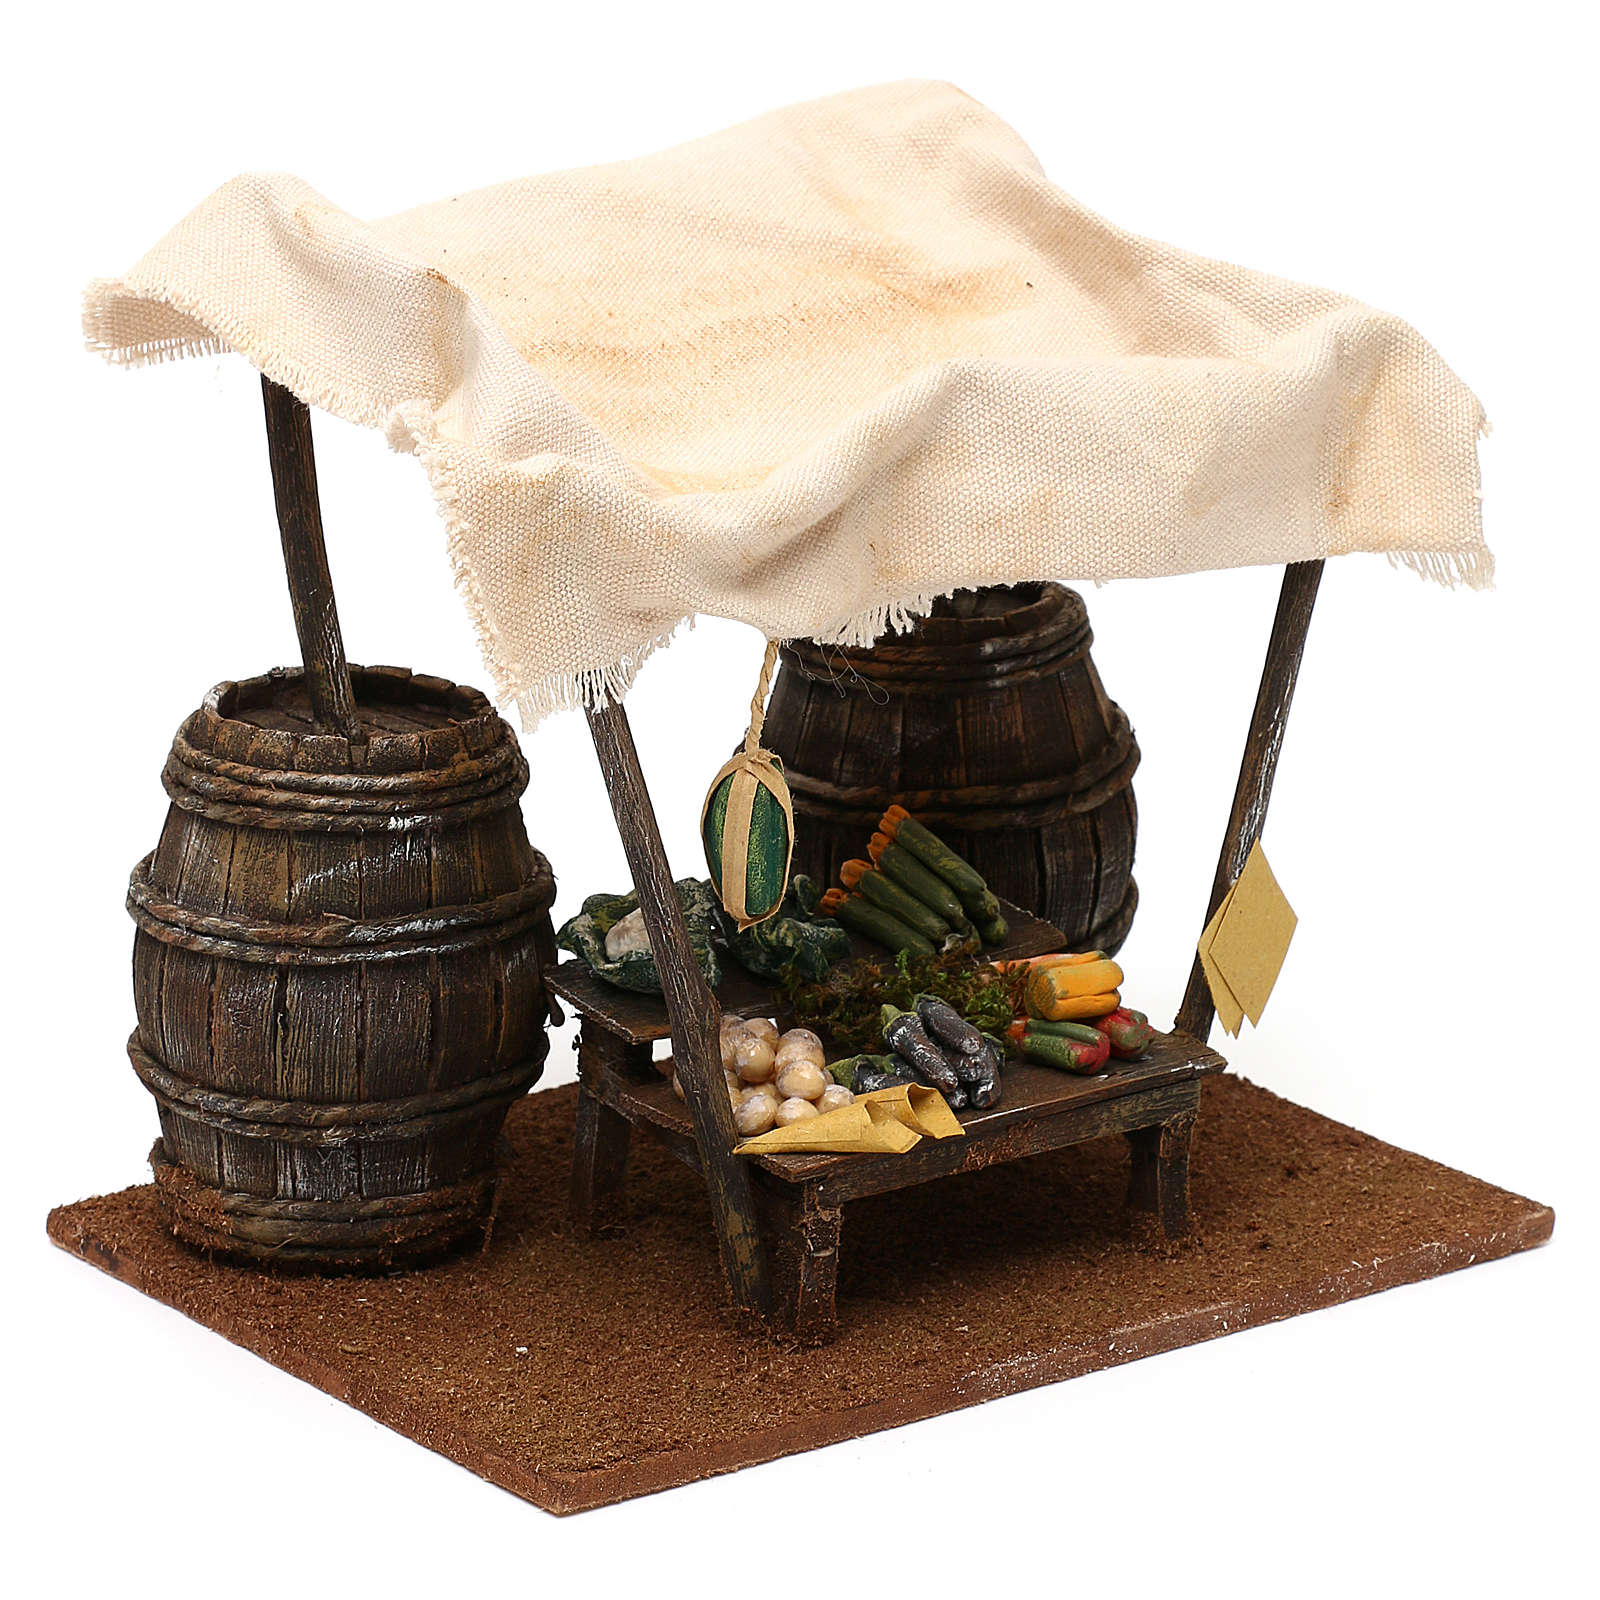 Greengrocer stall with barrels for 12 cm Nativity scene, 20x20x15 cm 4